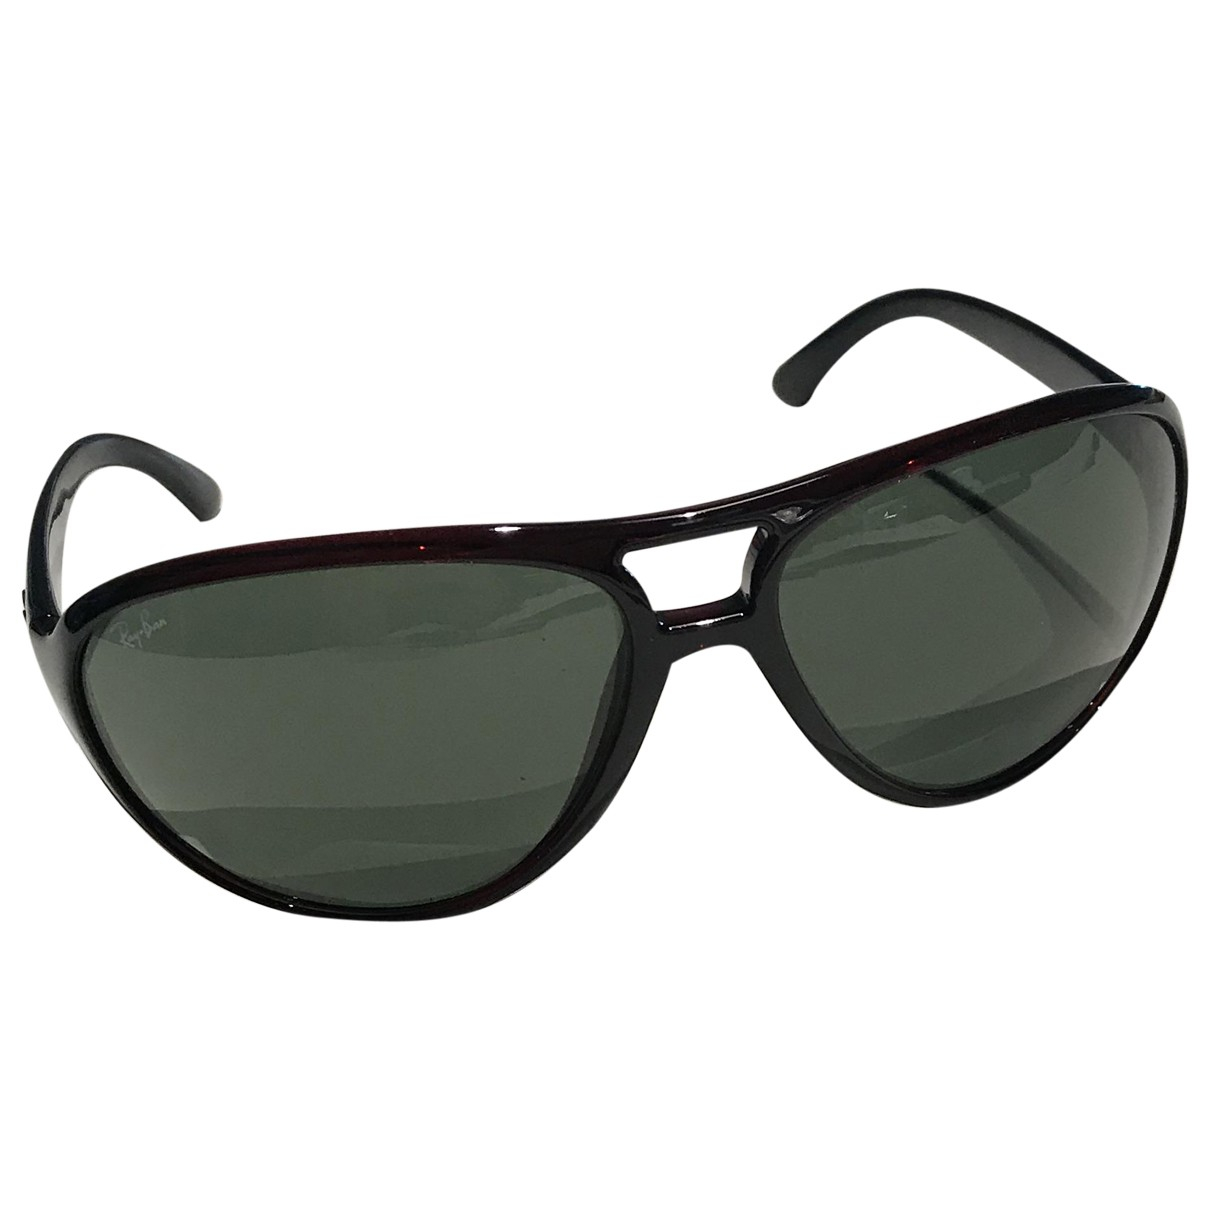 Ray-ban N Brown Sunglasses for Men N